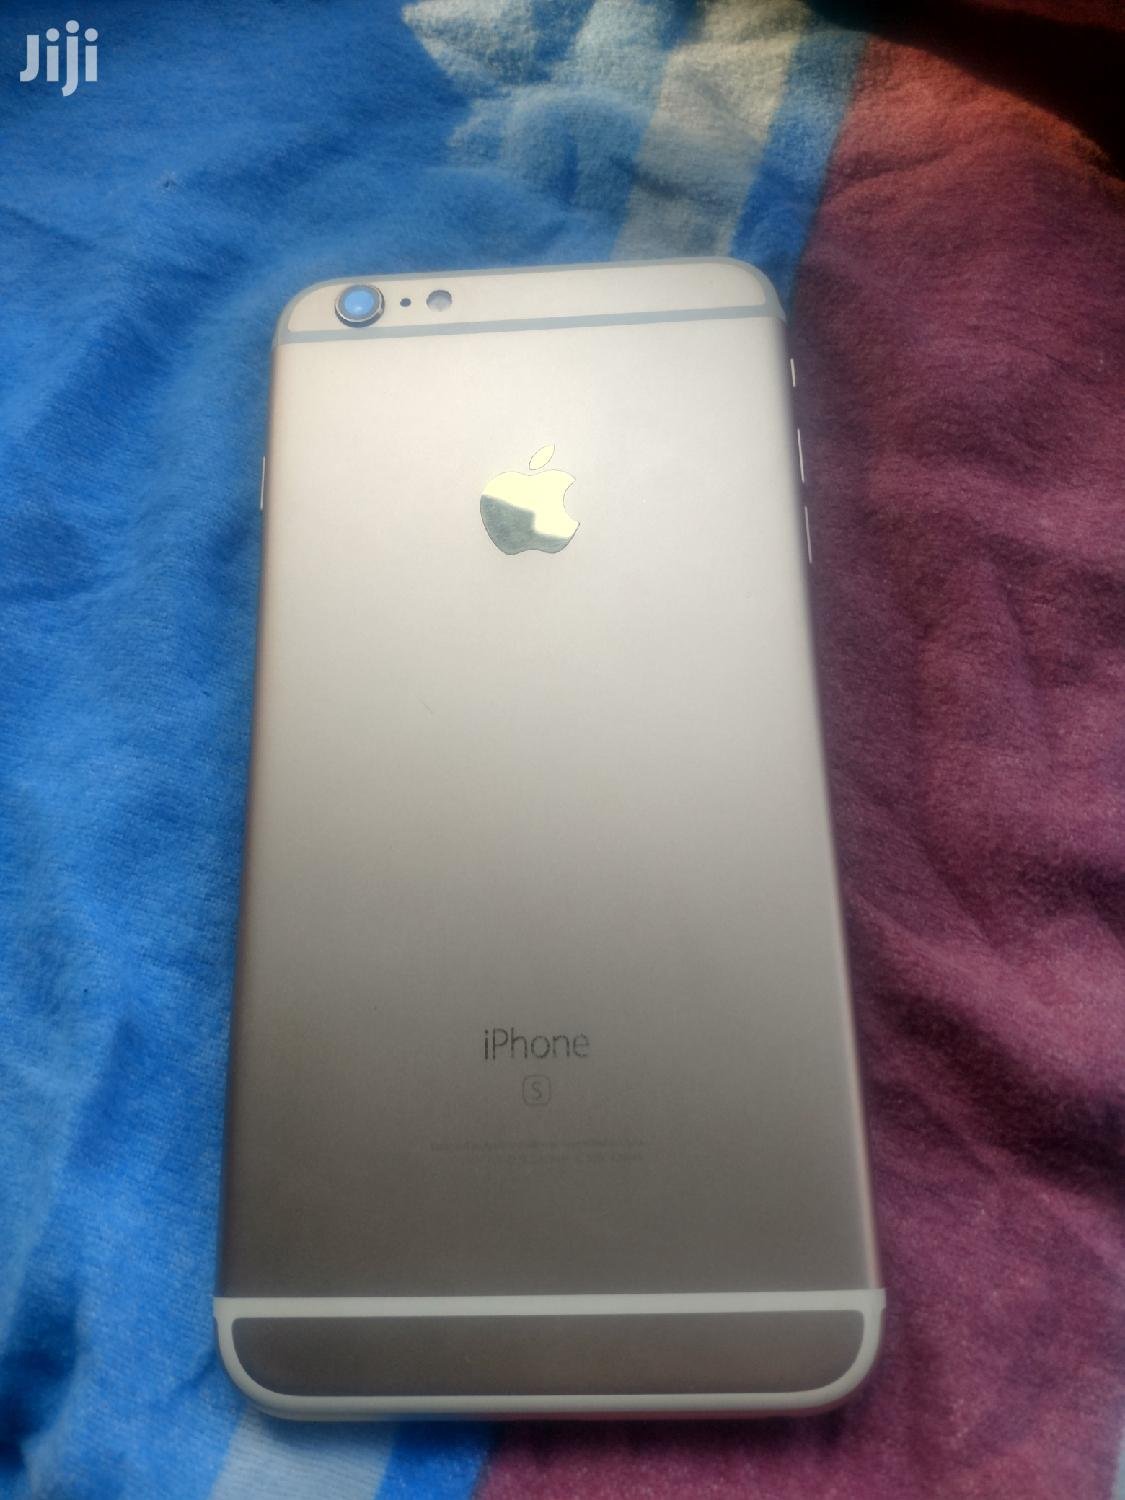 Apple iPhone 6s Plus 64 GB Silver | Mobile Phones for sale in Achimota, Greater Accra, Ghana